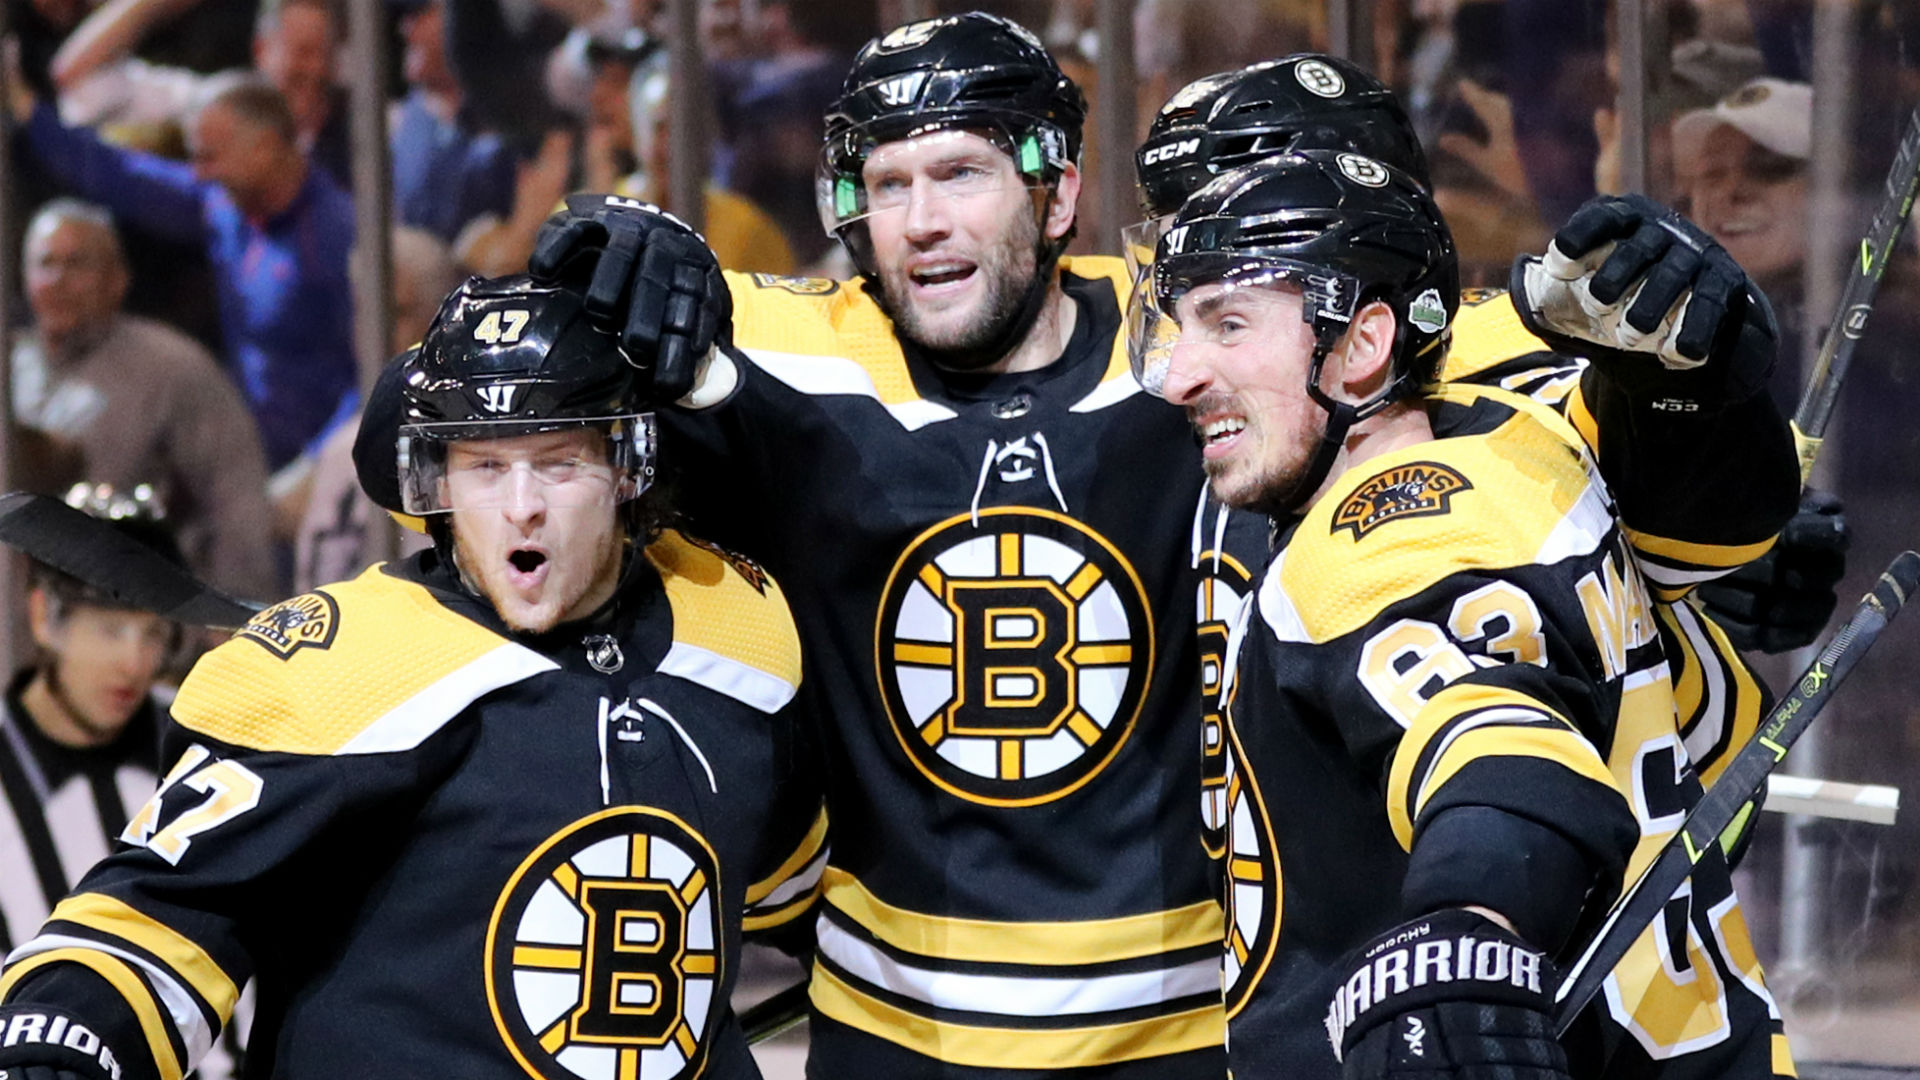 NHL playoffs 2018: Bruins finish off Maple Leafs in back ...Bruins News